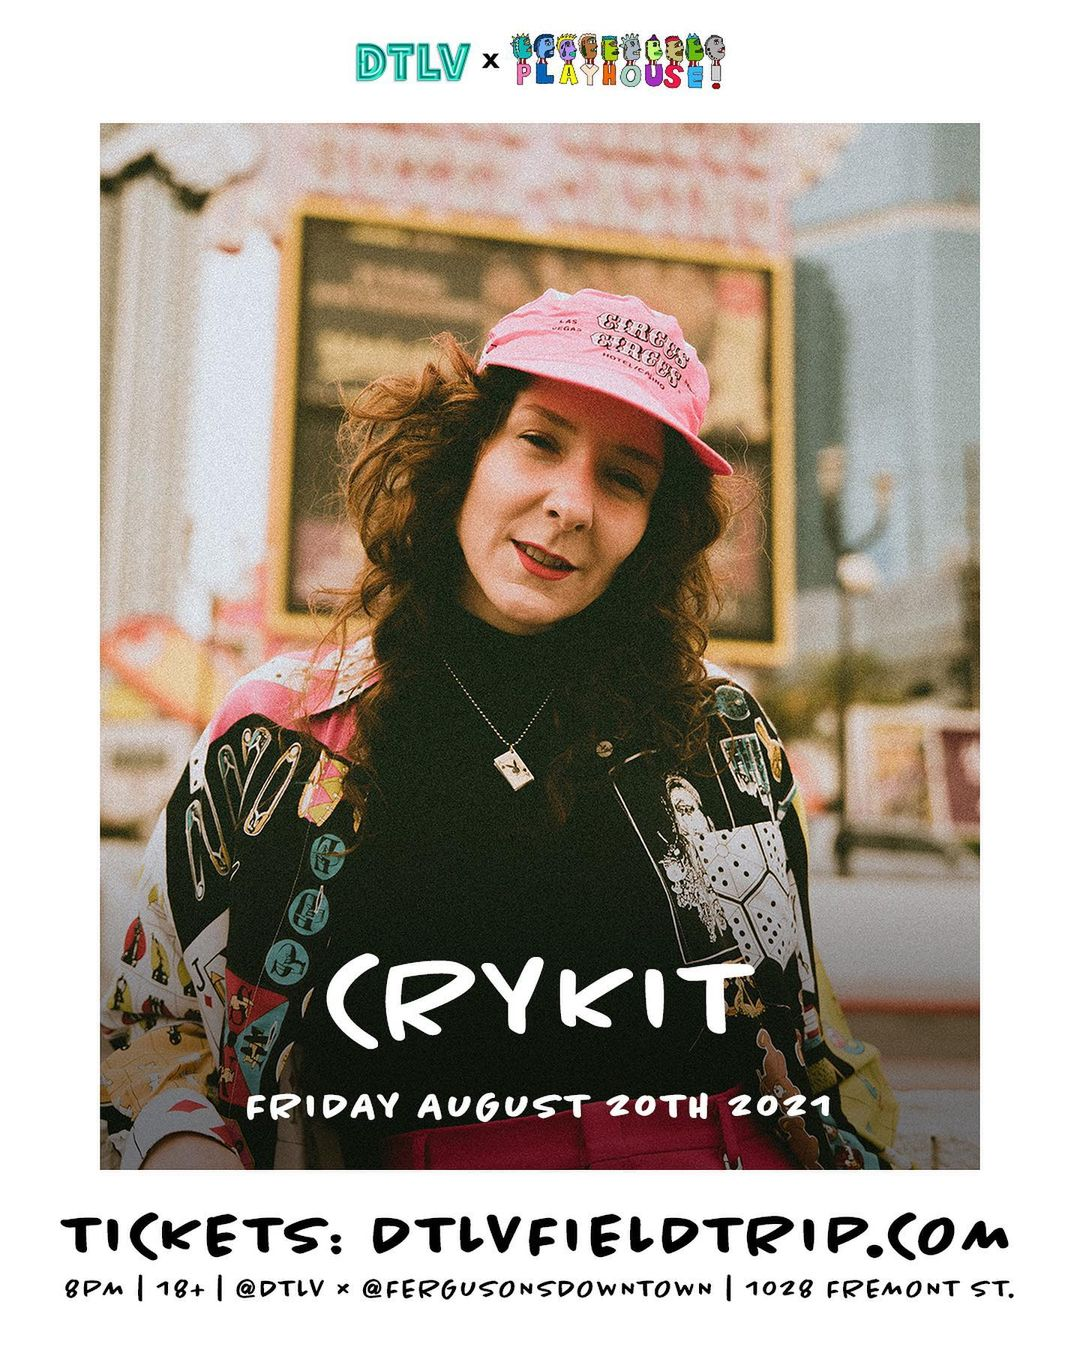 CRYKIT DTLV